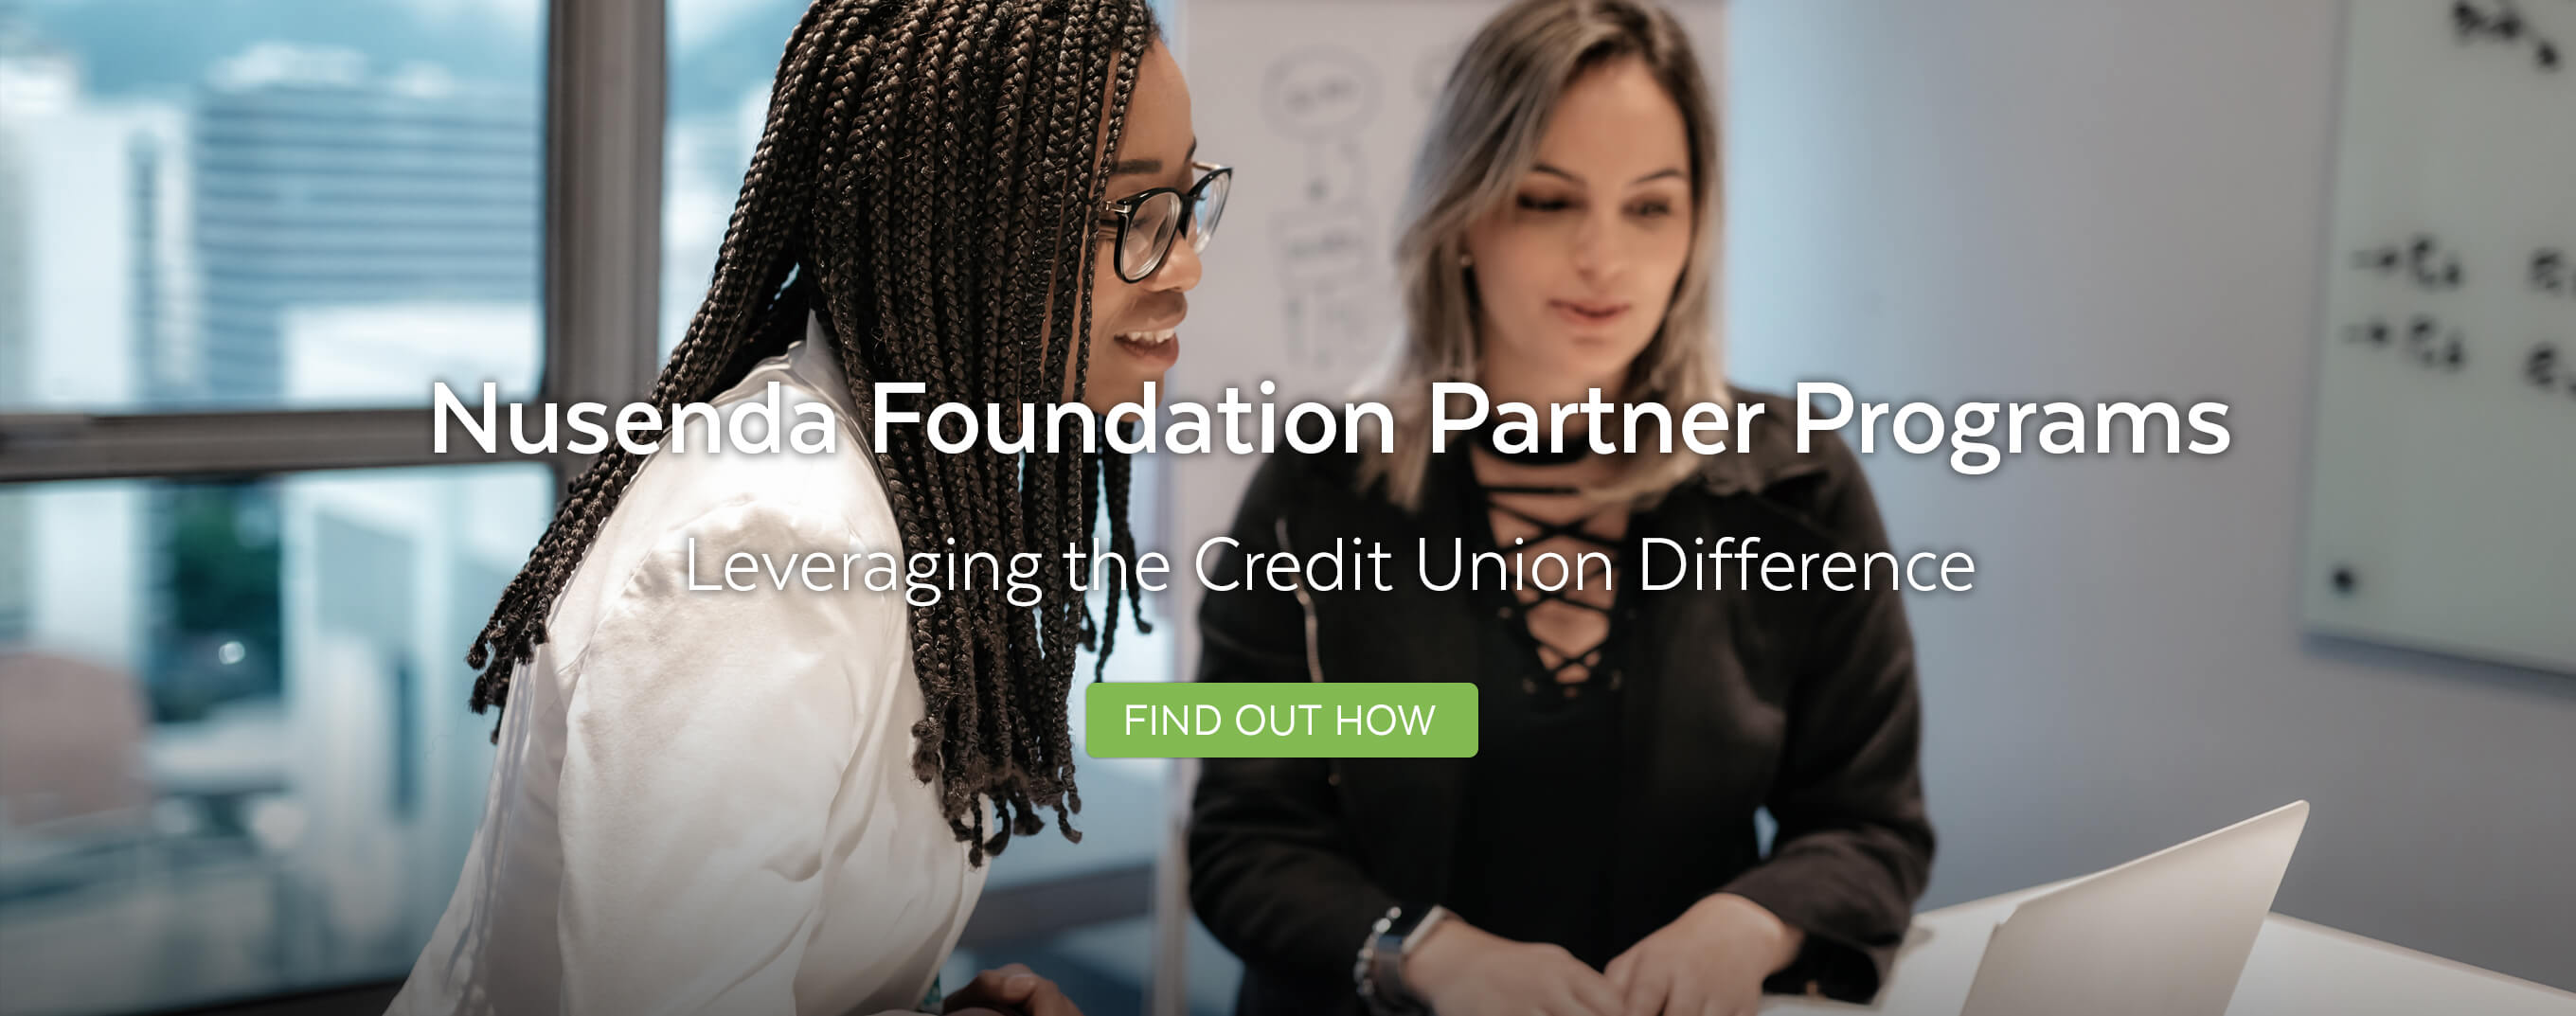 Nusenda Foundation Partner Programs. Leveraging the Credit Union Difference. Find out how.